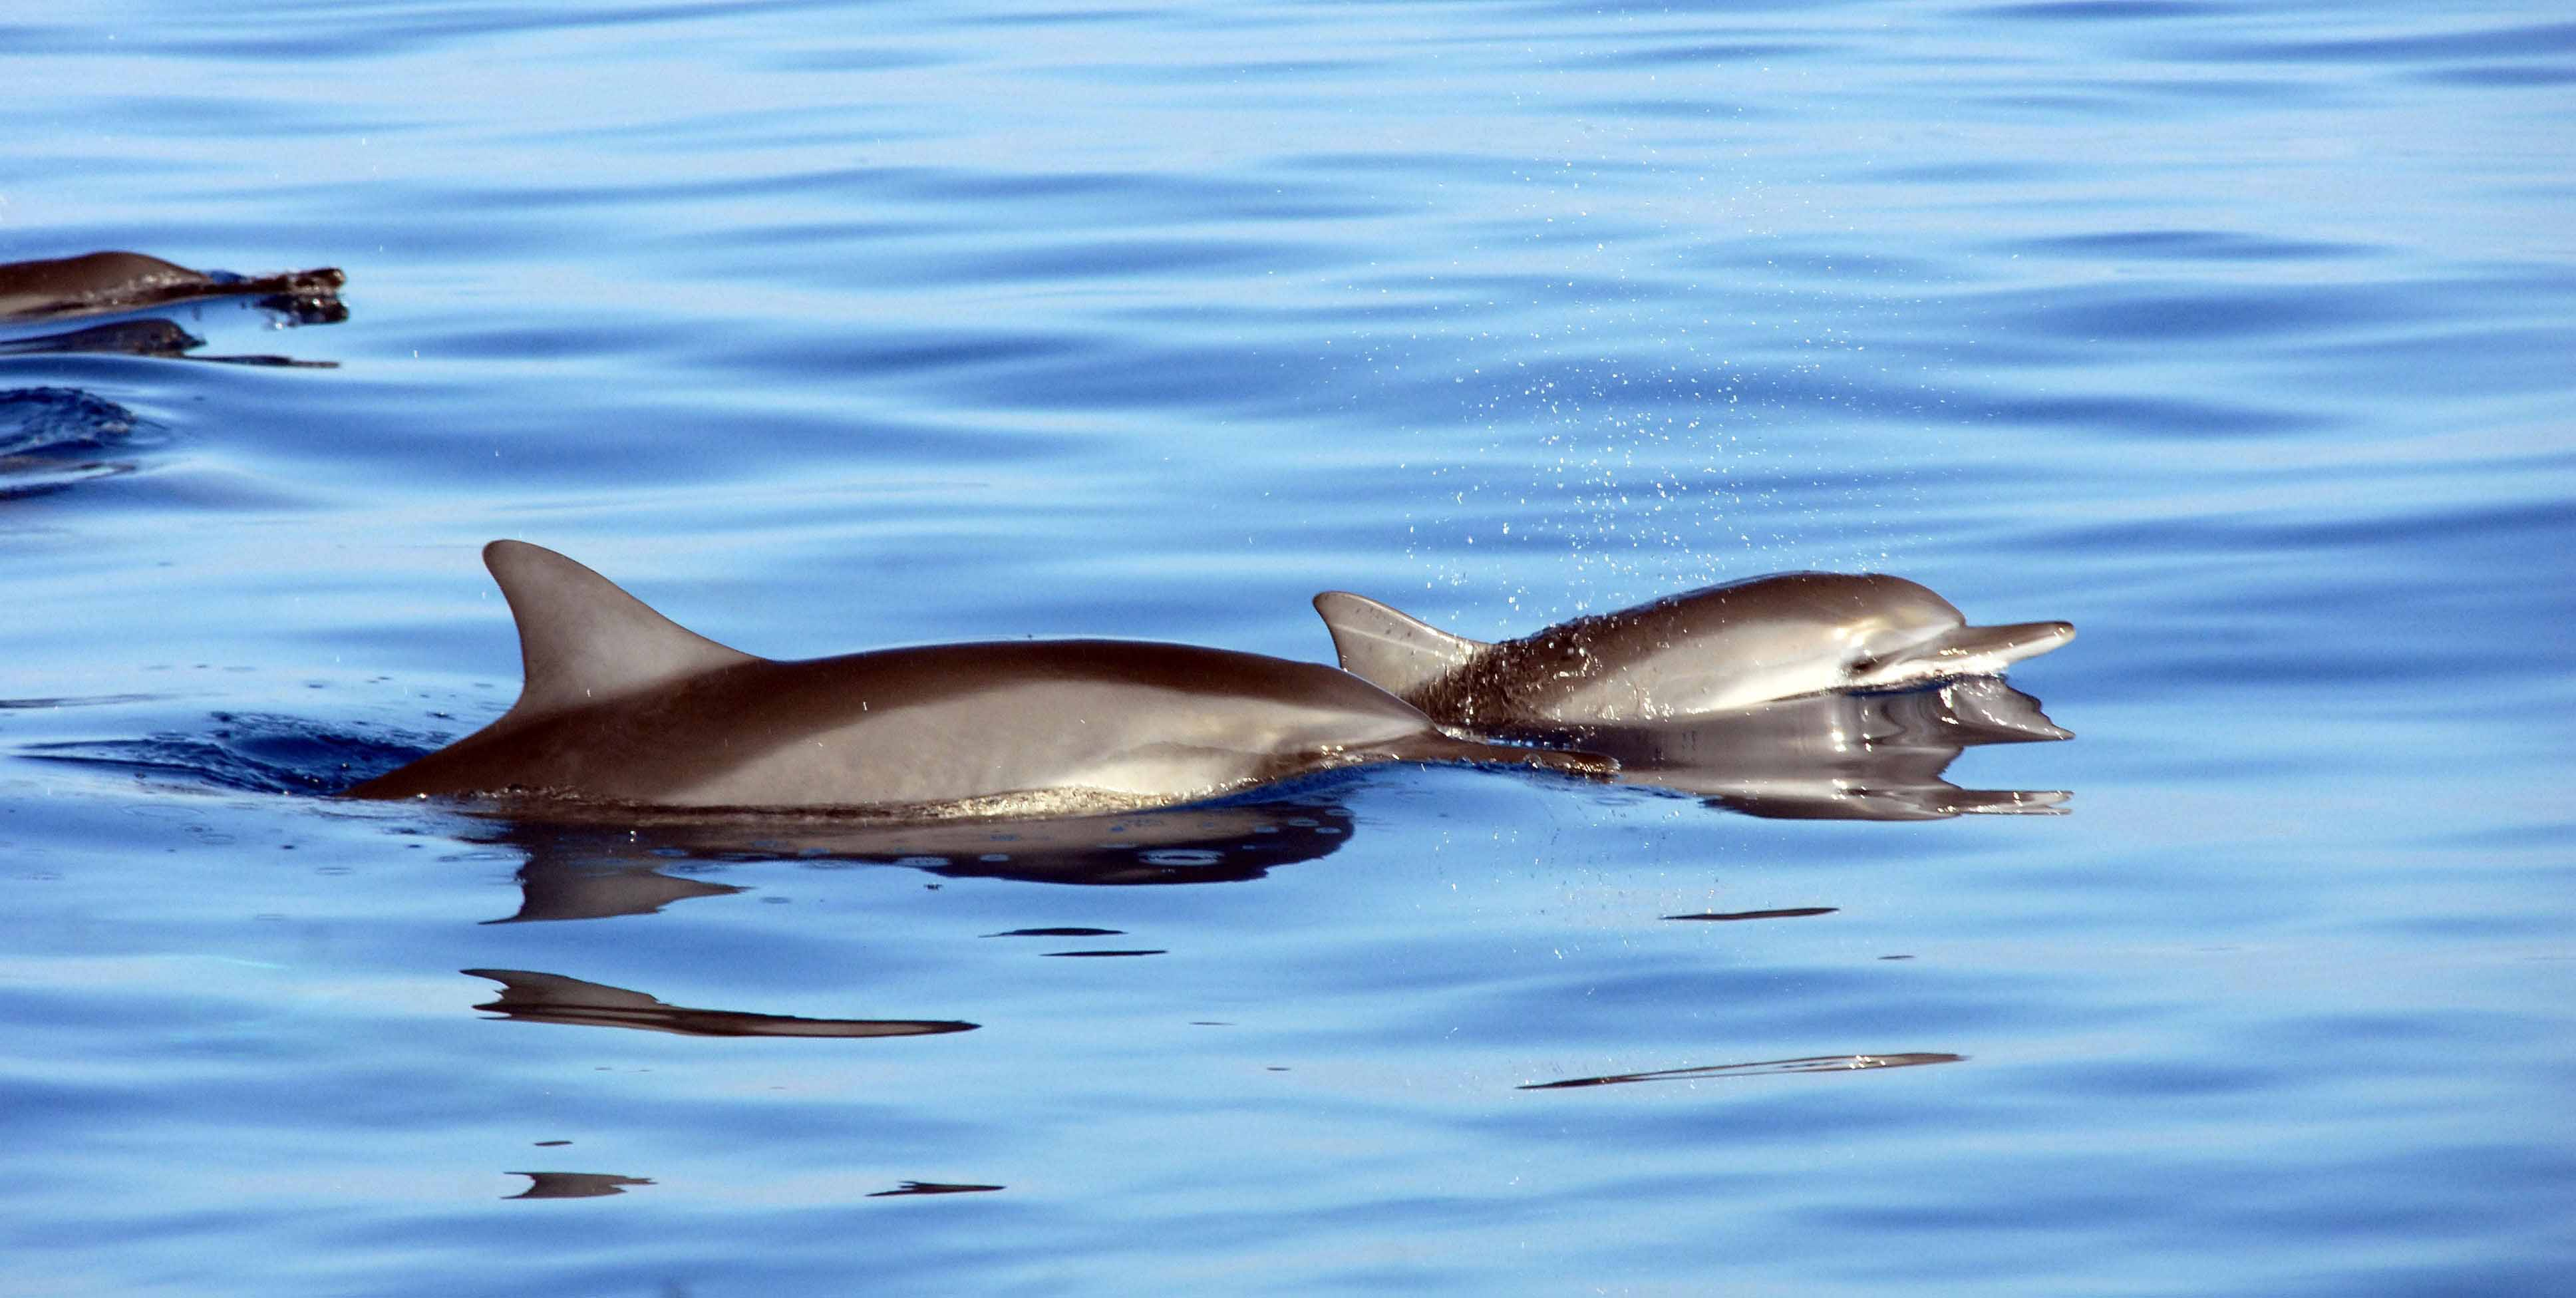 vecteezy-two-dolphins-breaking-the-waters-surface-2805968-1.jpg